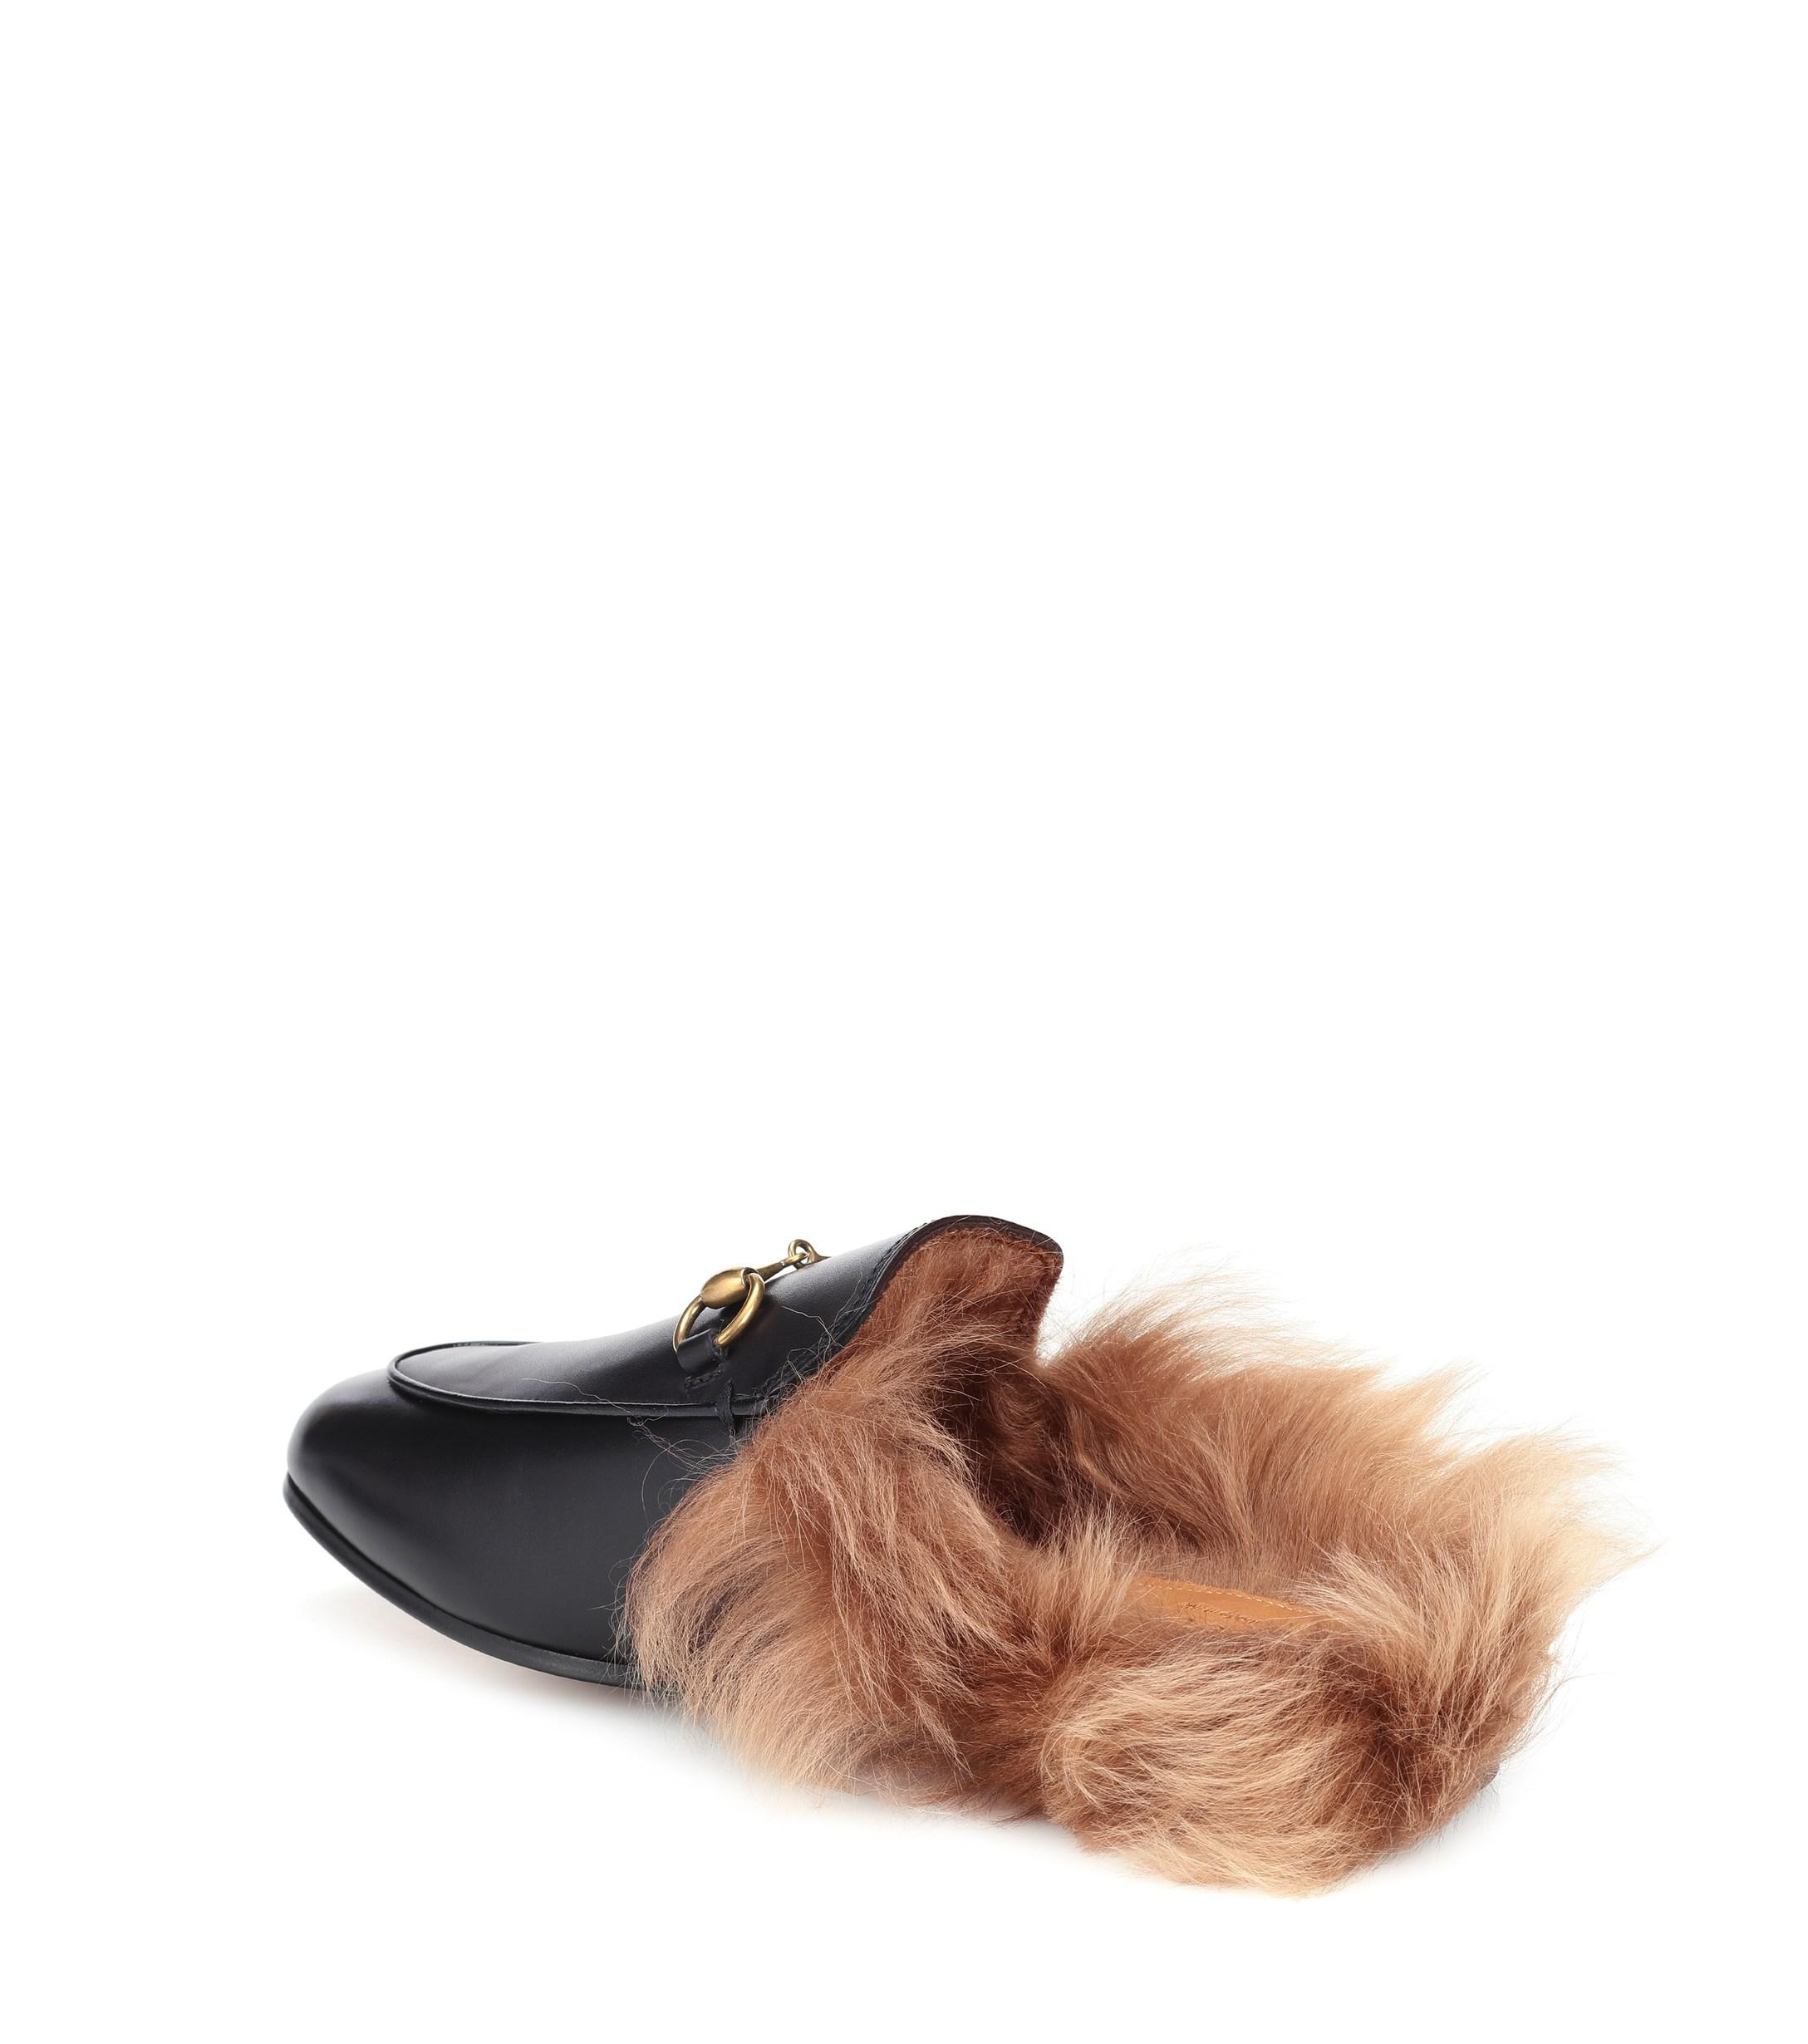 b02e53cf231 Gucci - Black Princetown Fur-lined Leather Slippers - Lyst. View fullscreen